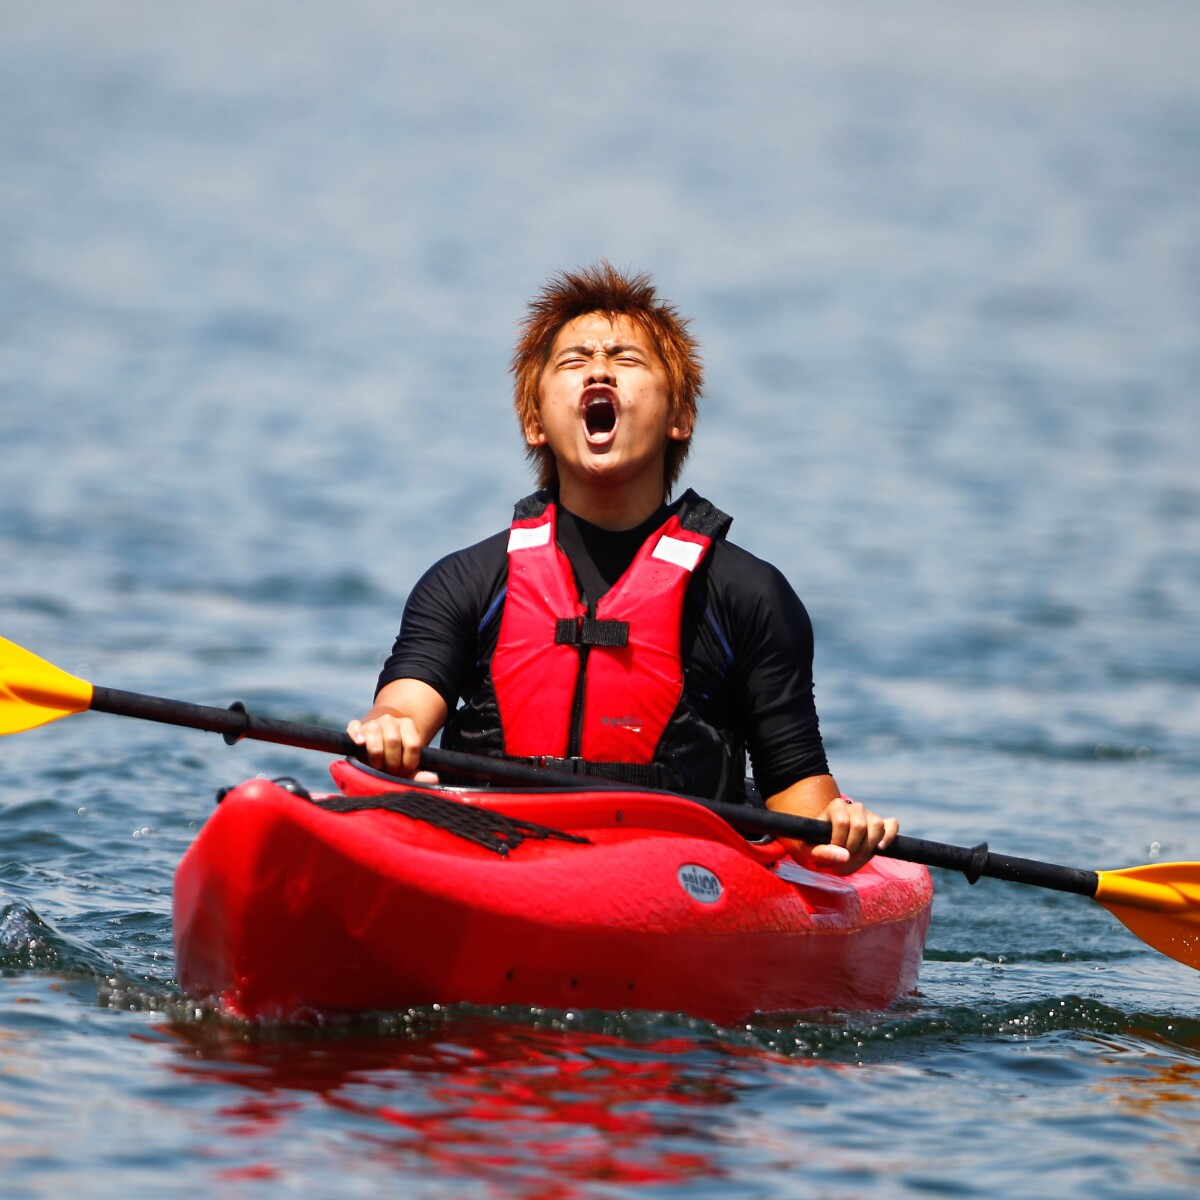 Taiwanese Kayaker Kuan-Hao Chiu Yells with Excitement During Competition at the 2011 World Summer Games in Athens, Greece